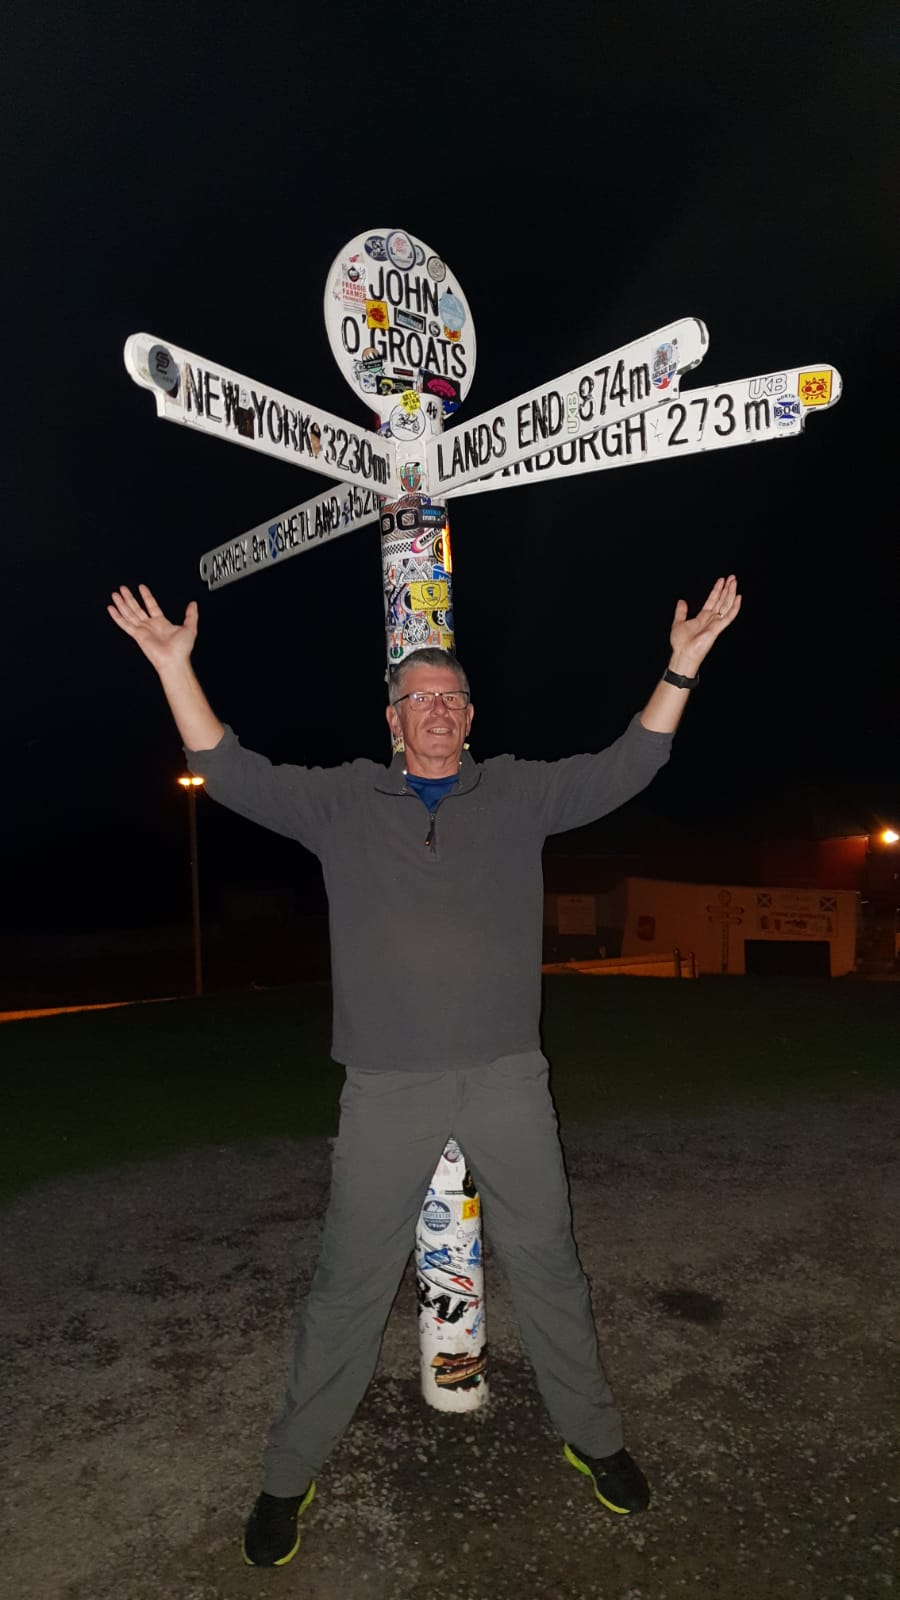 Cyclist celebrates finishing LEJOG, Land's End to John O'Groats